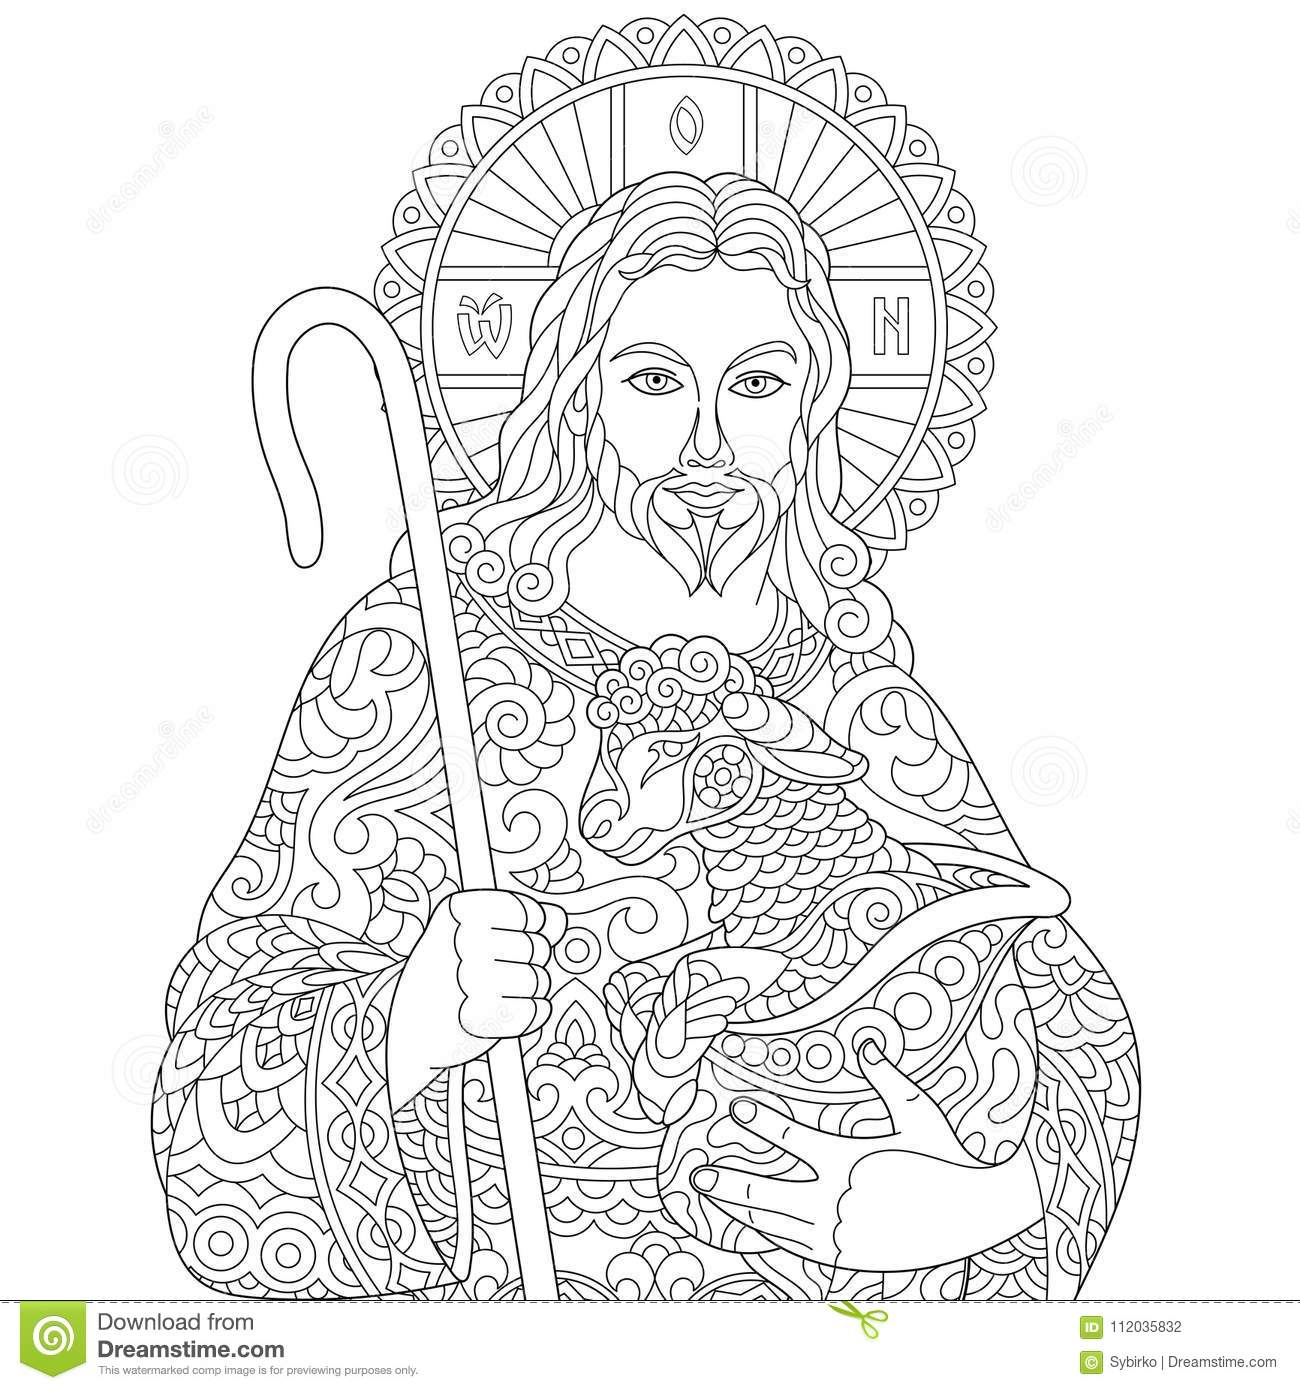 jesus caring coloring pages - photo#39